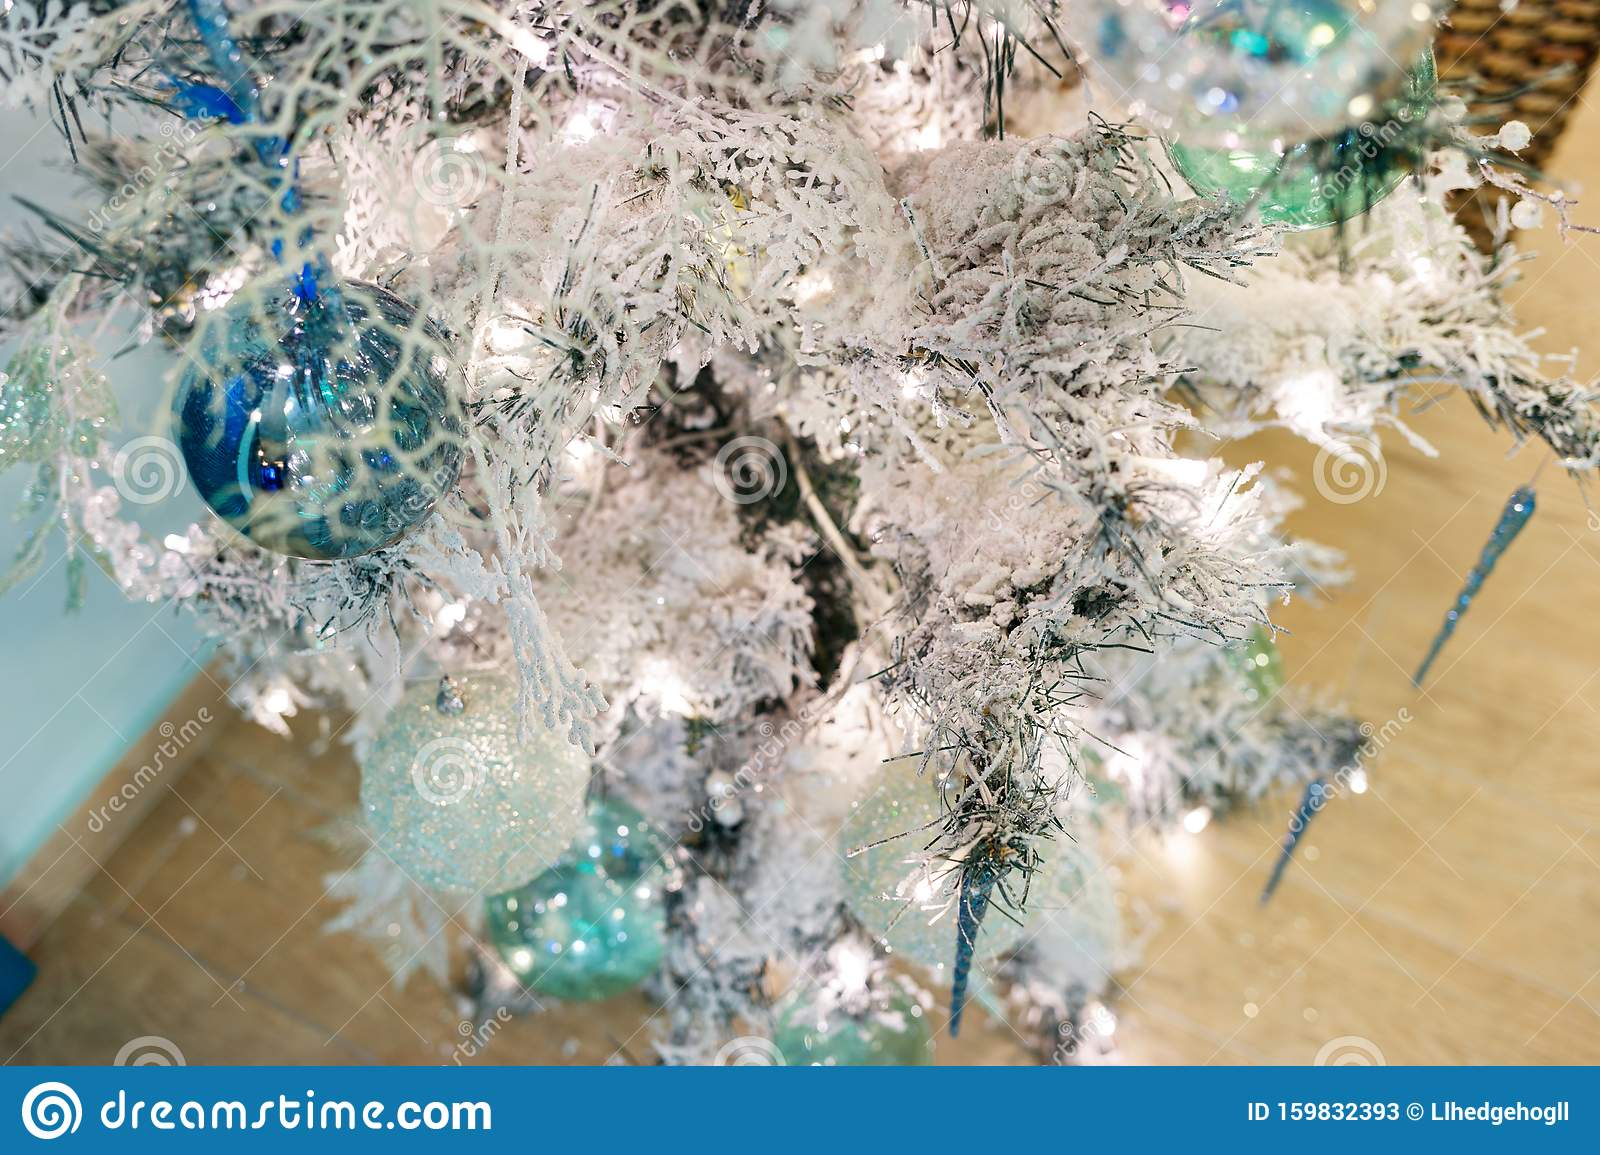 Christmas Tree With White Artificial Snow On Branches And Decorations Stock Image Image Of Magic Snow 159832393